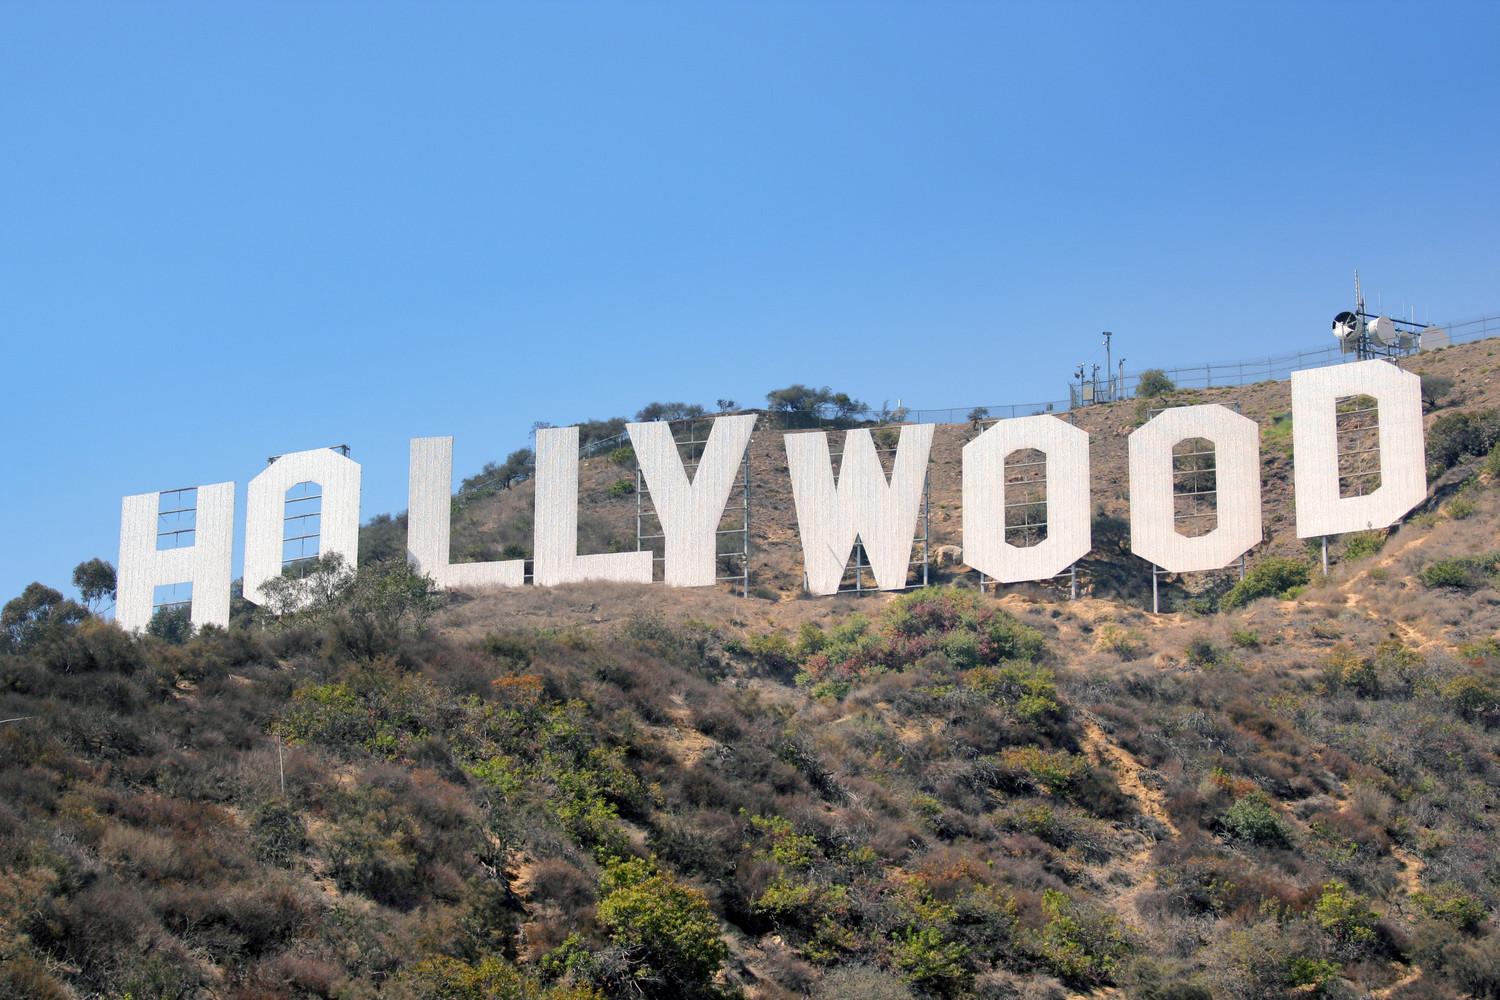 The milers' final destination is the iconic Hollywood sign that has presided in the hills above Movietown since 1923